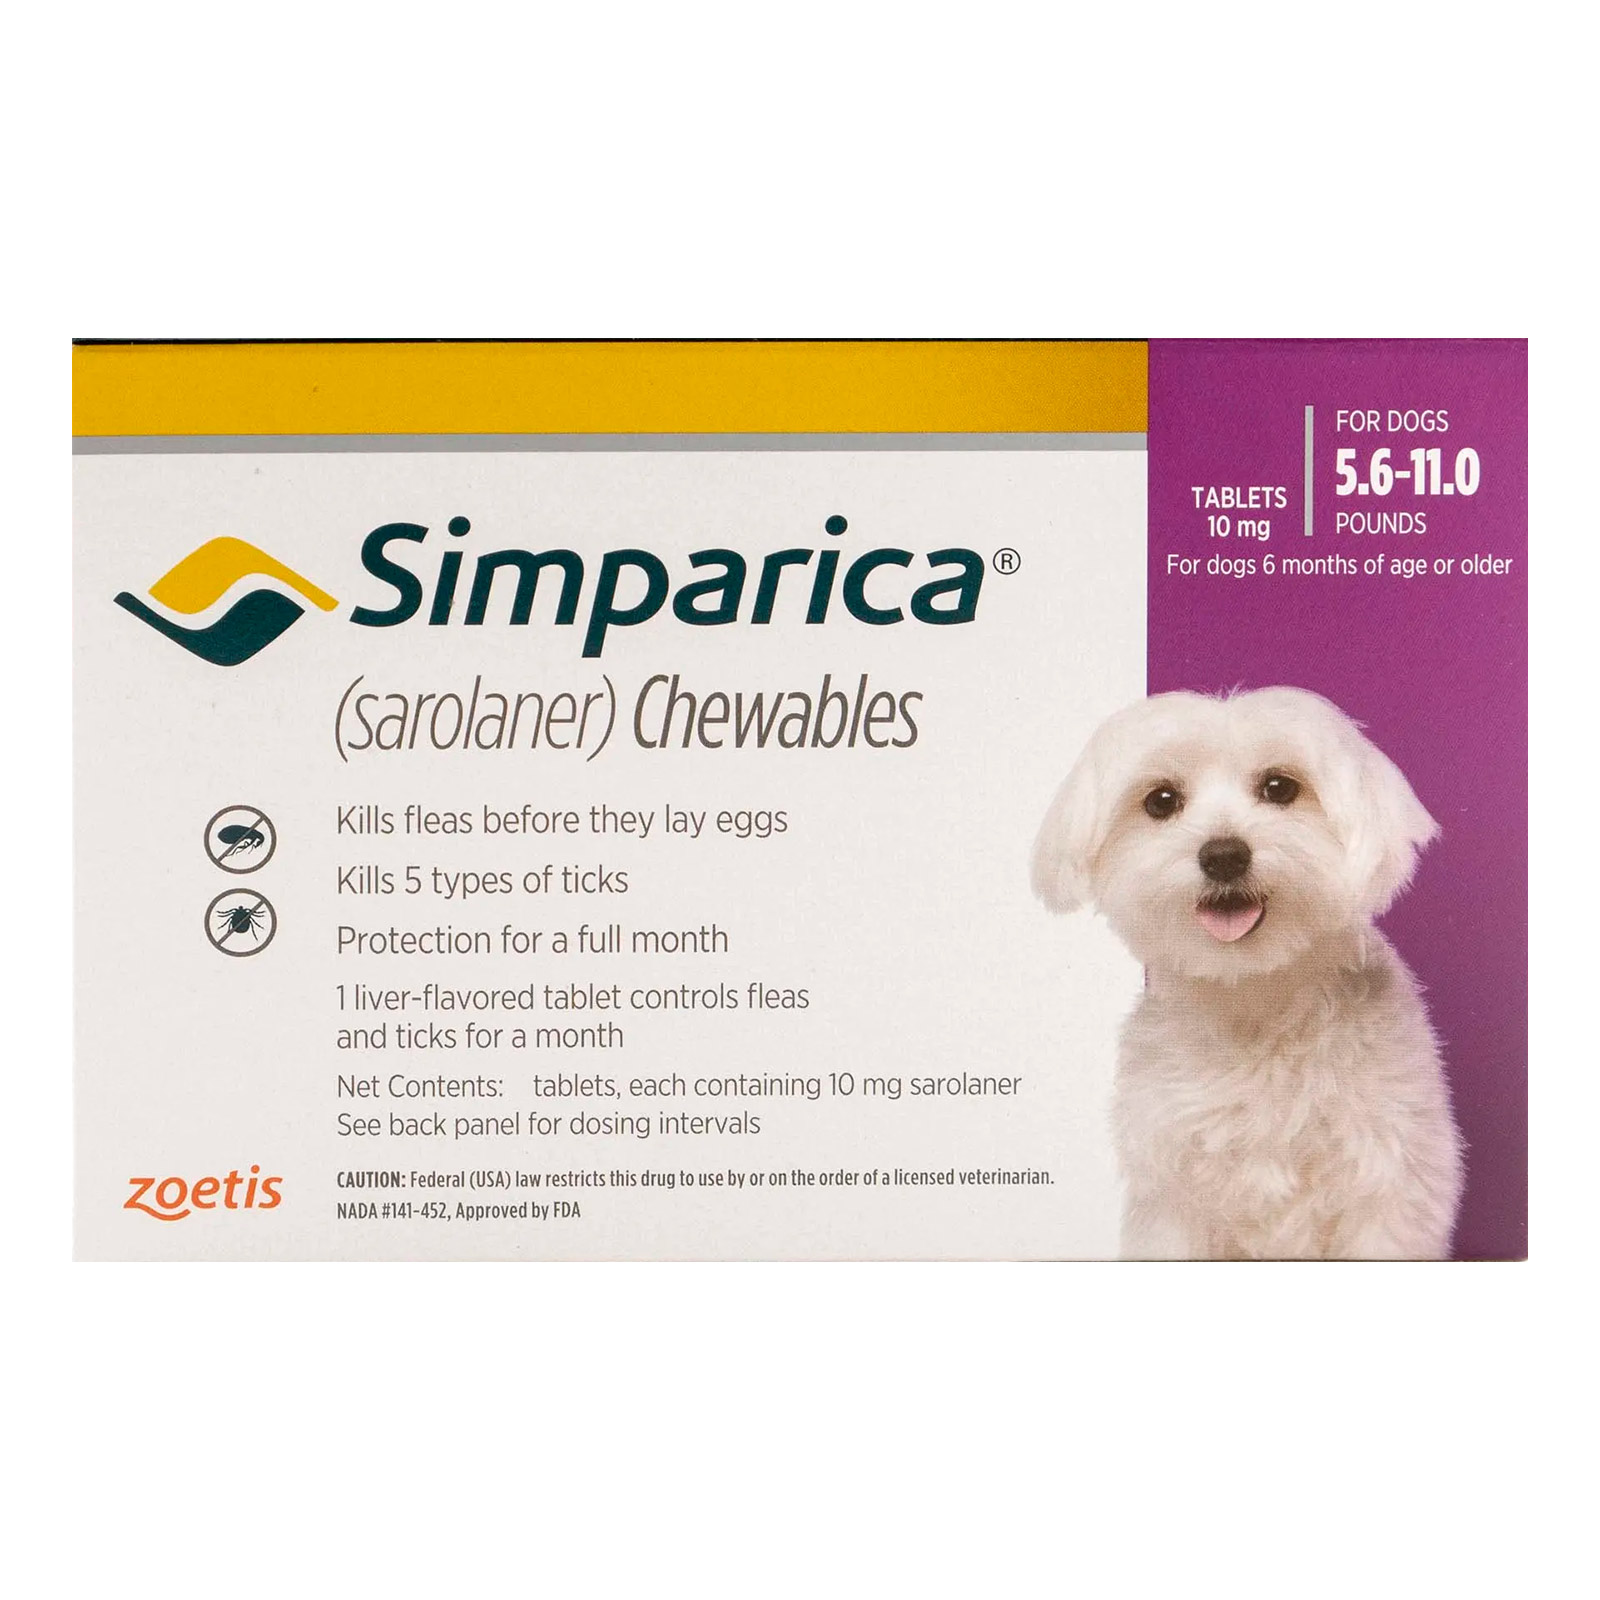 Simparica Chewables For Dogs 5.6-11 Lbs Purple 3 Pack